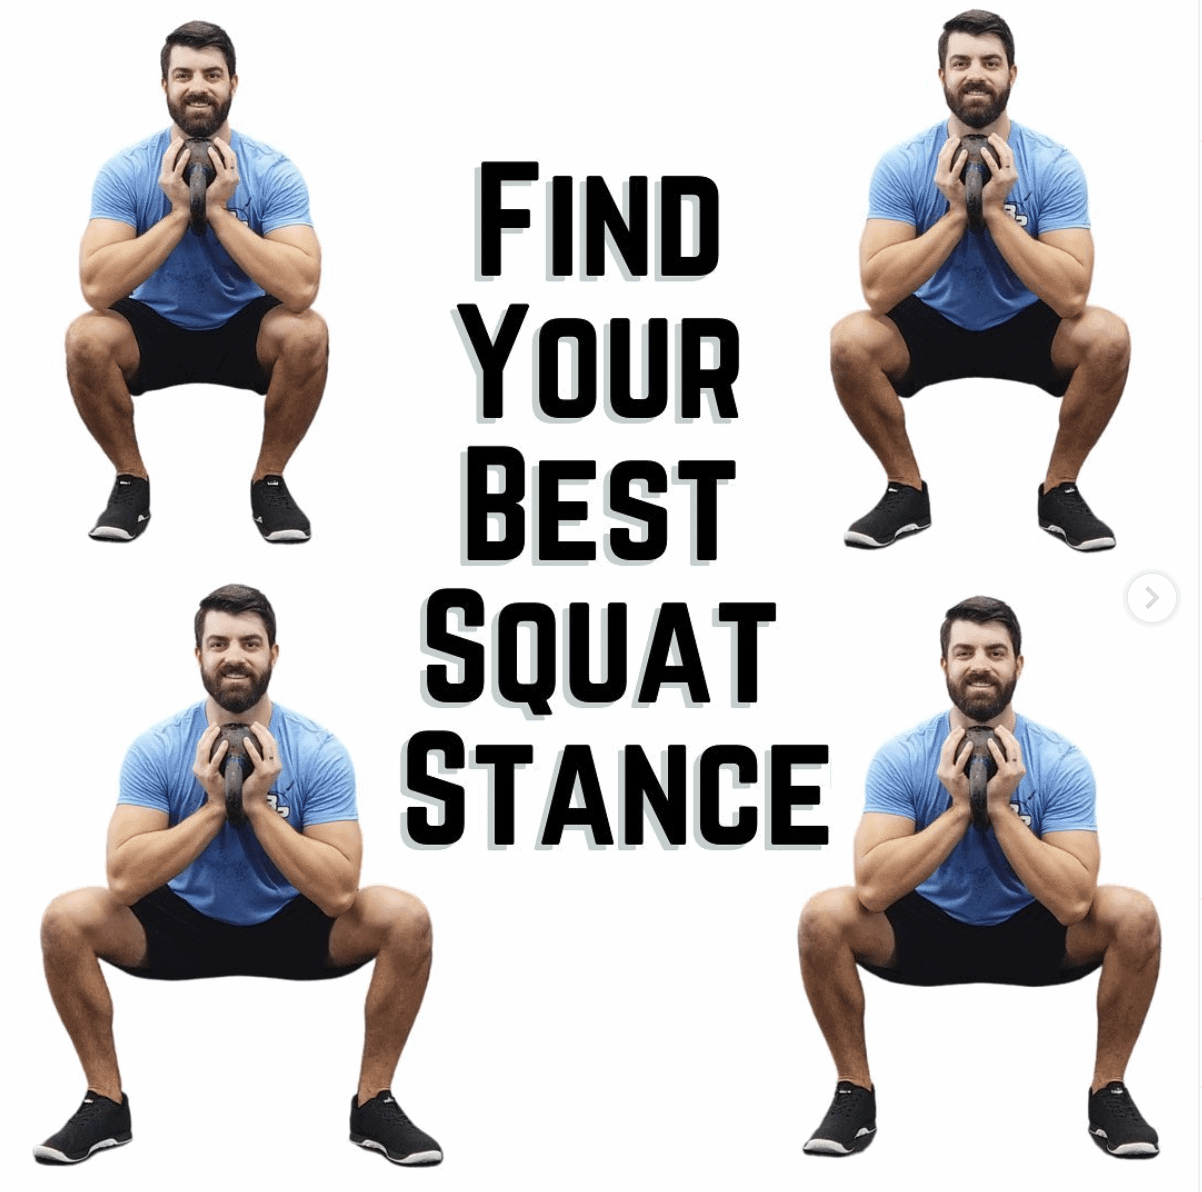 Squat stance toe out